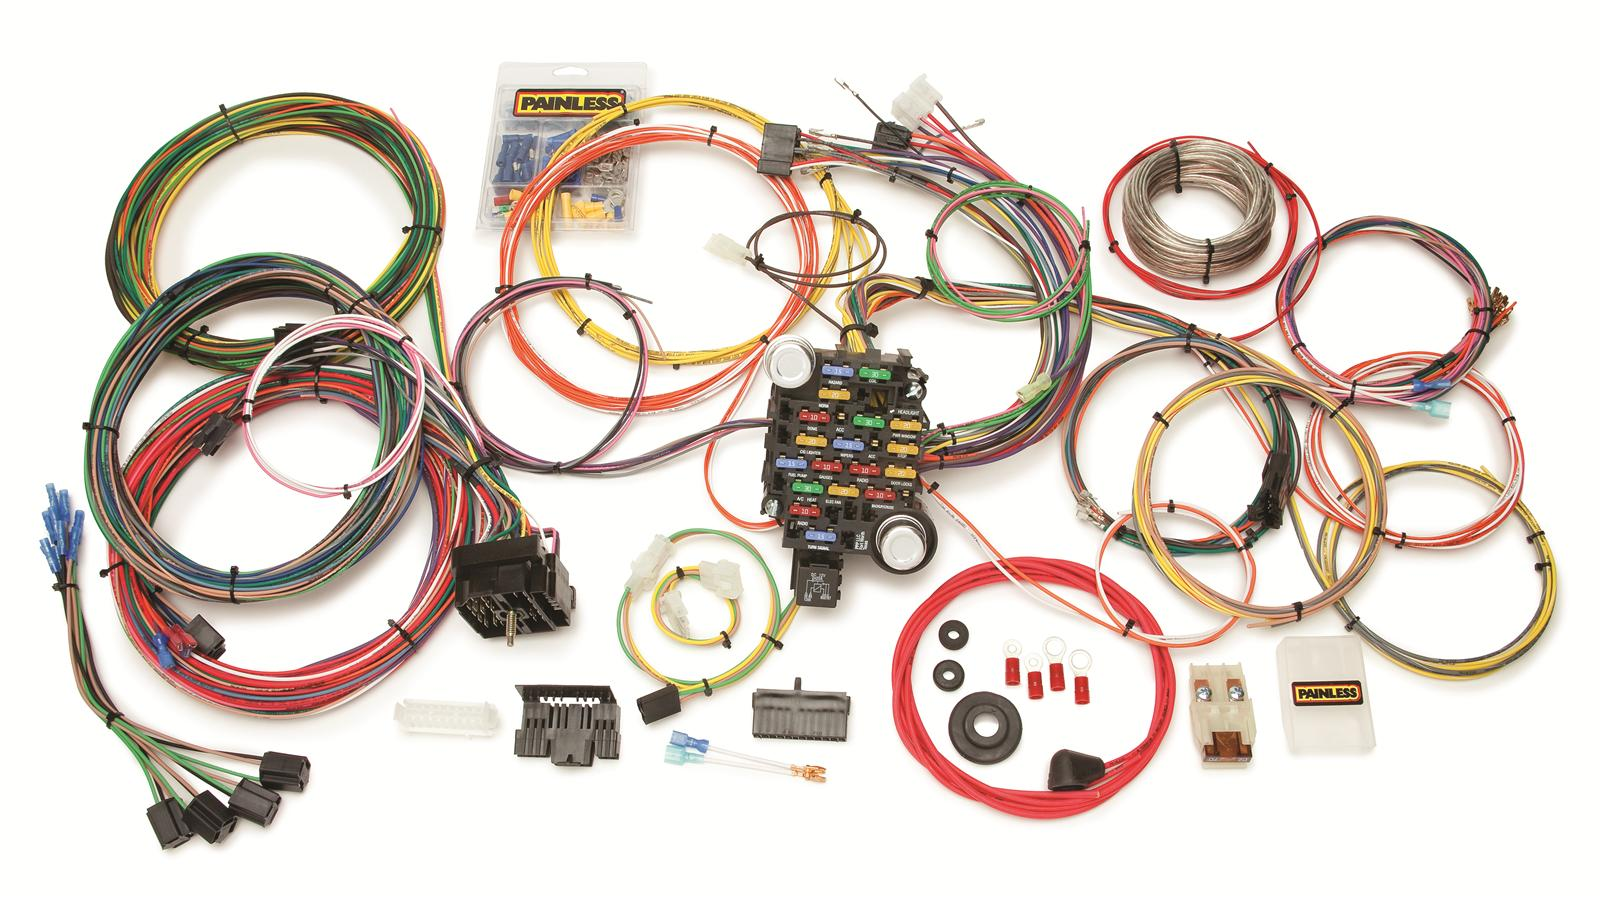 Painless Performance Gmc Chevy Truck Harnesses 10205 Free Shipping 1941 Buick Wiring Diagram On Orders Over 99 At Summit Racing